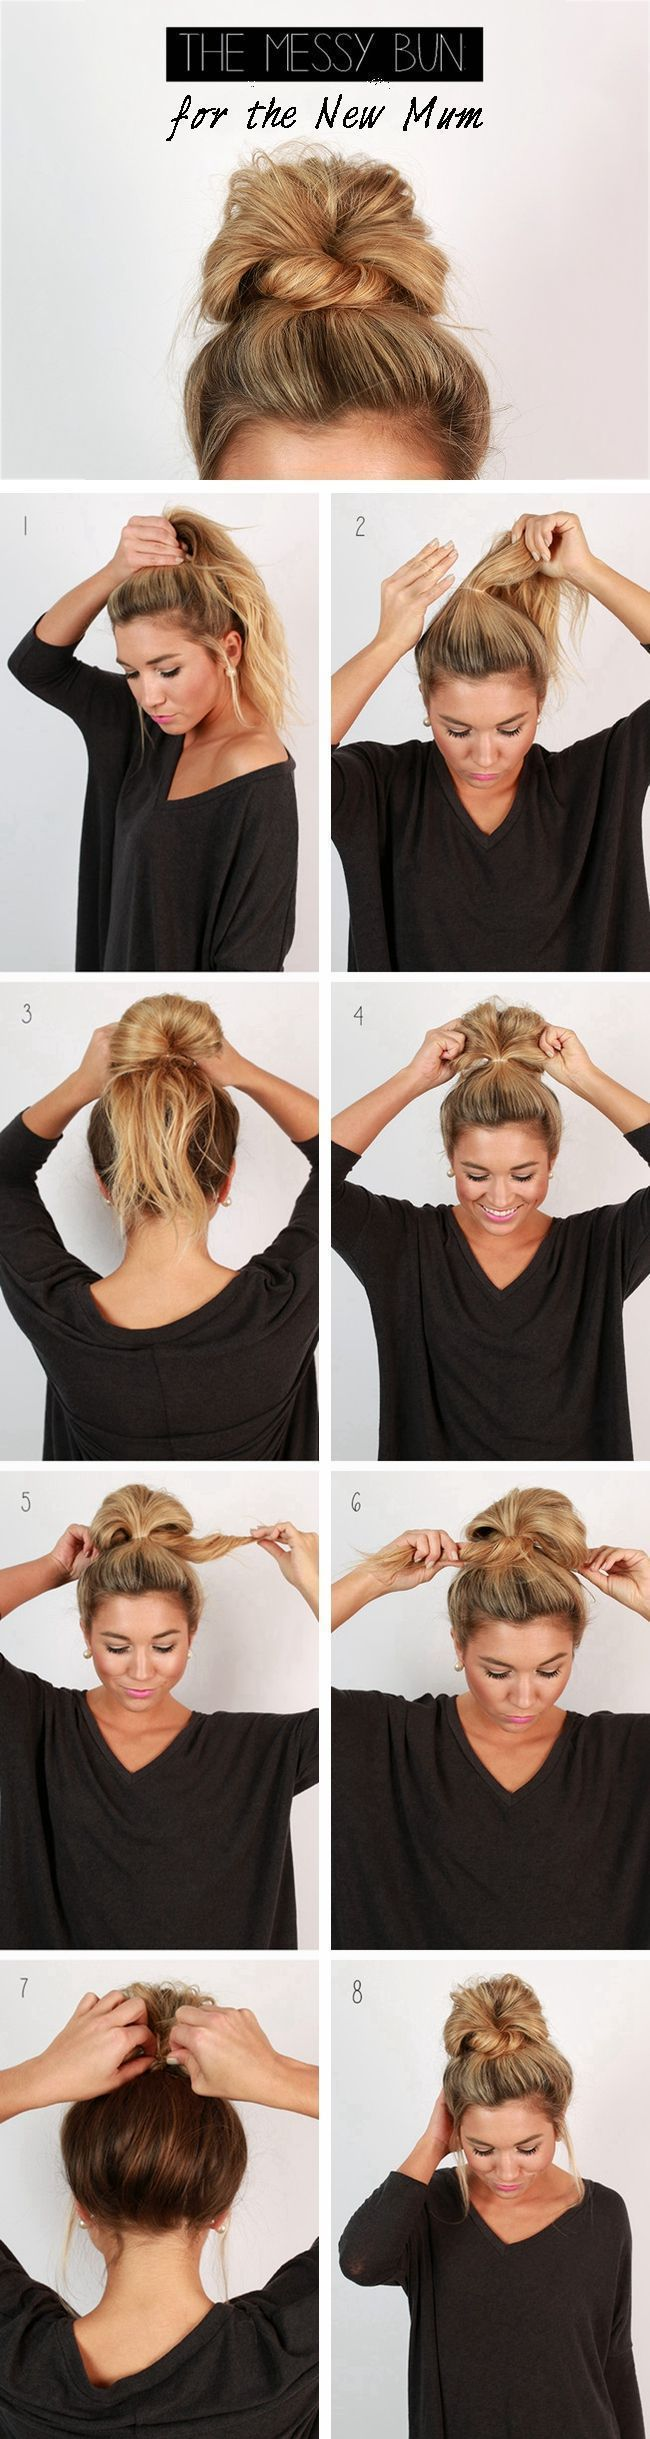 1062 best Cute Hairstyles images on Pinterest | Hair dos, Hair ...